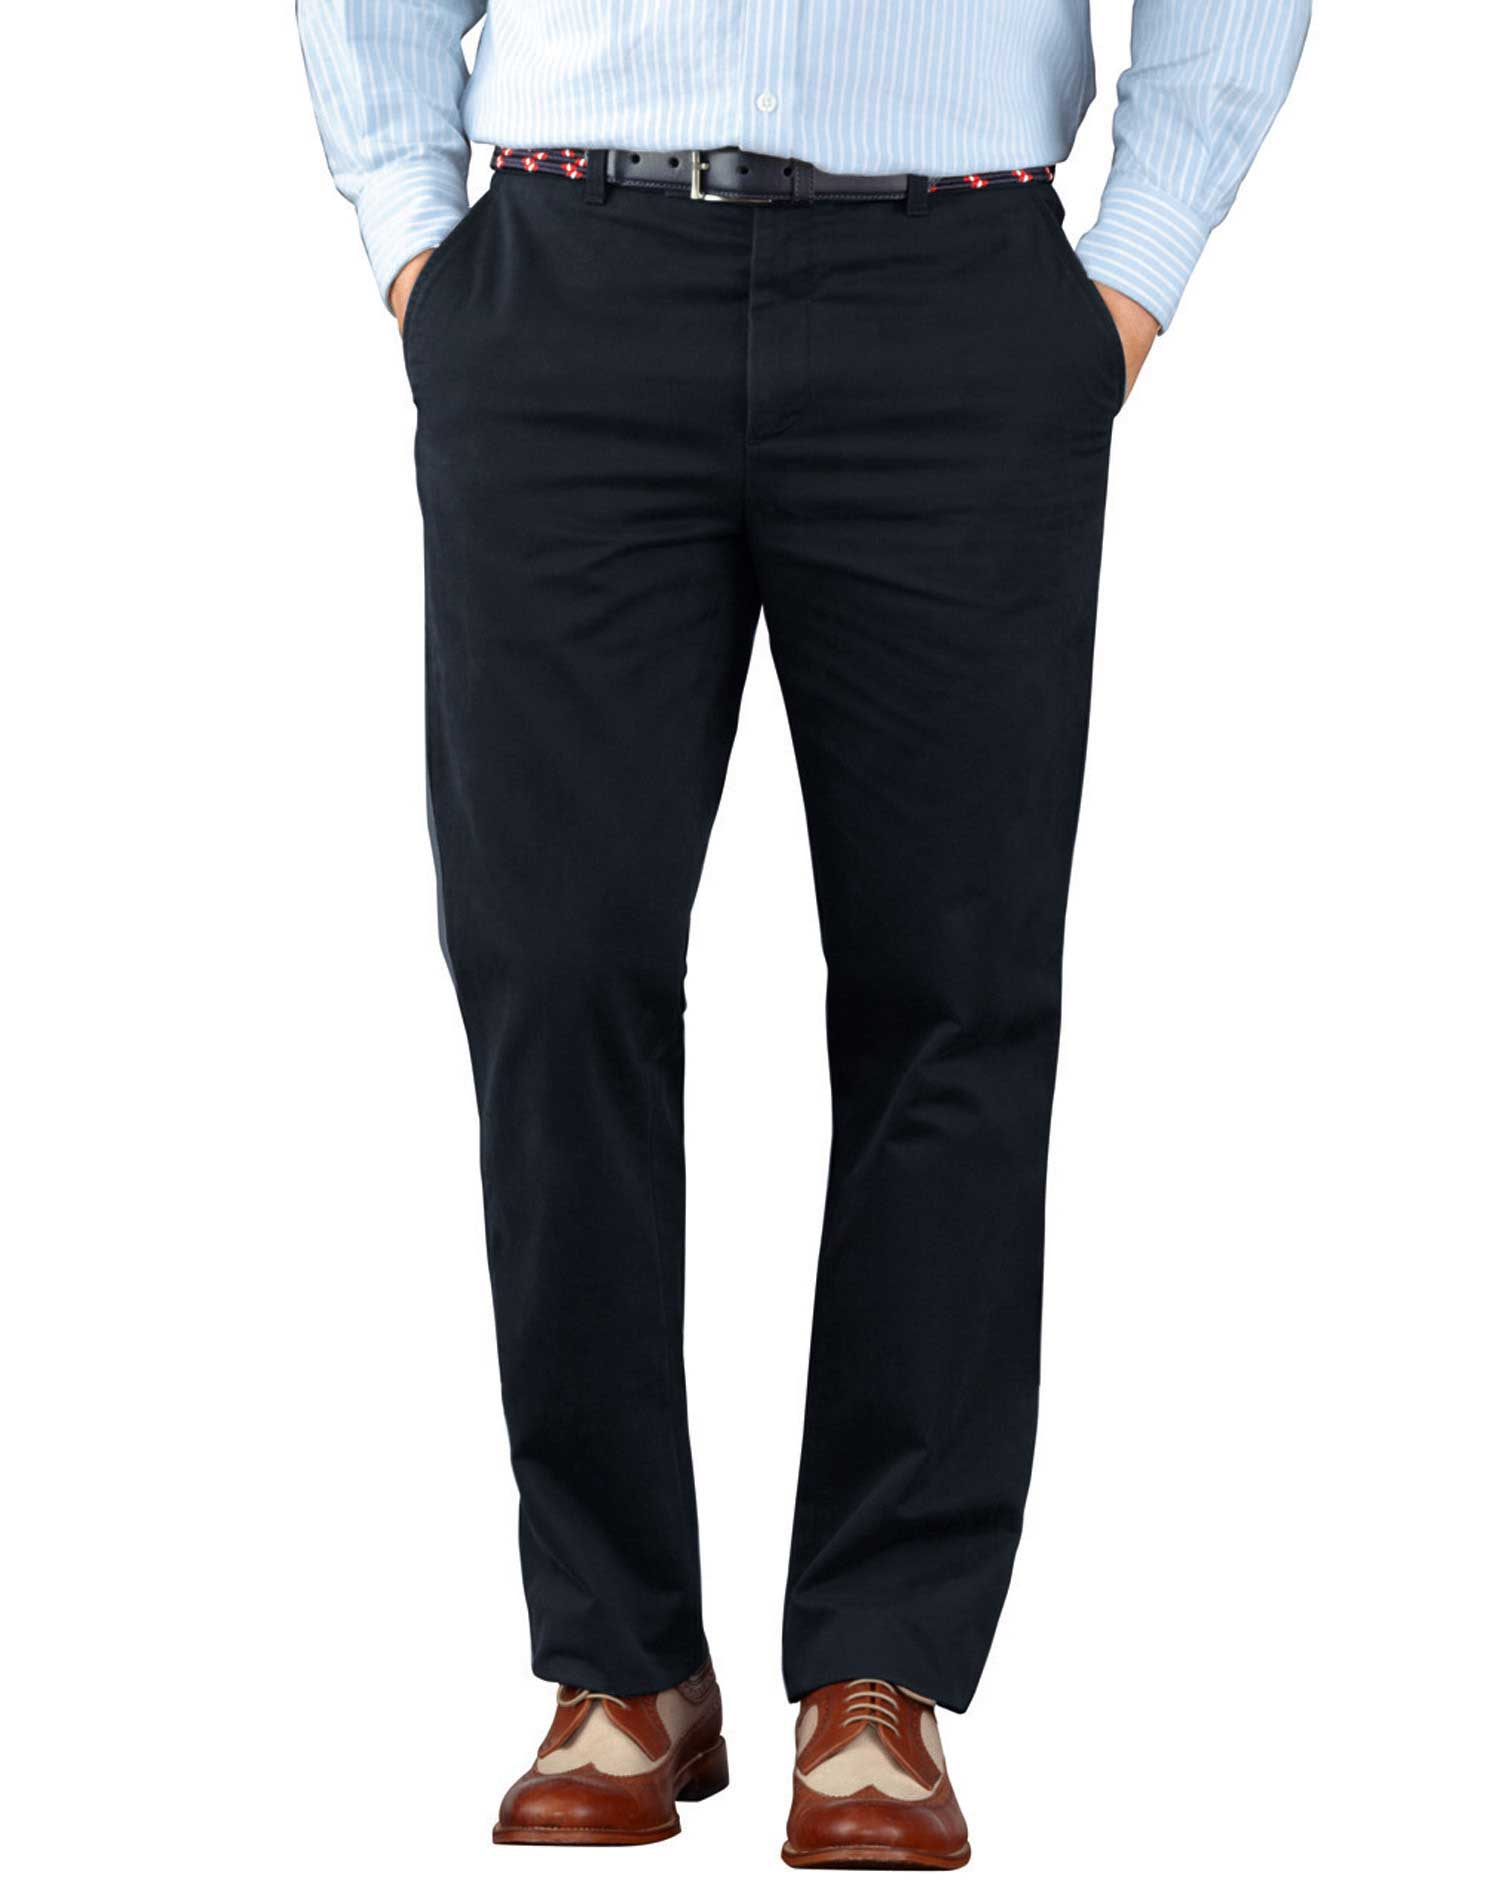 Navy Slim Fit Flat Front Weekend Cotton Chino Trousers Size W42 L29 by Charles Tyrwhitt